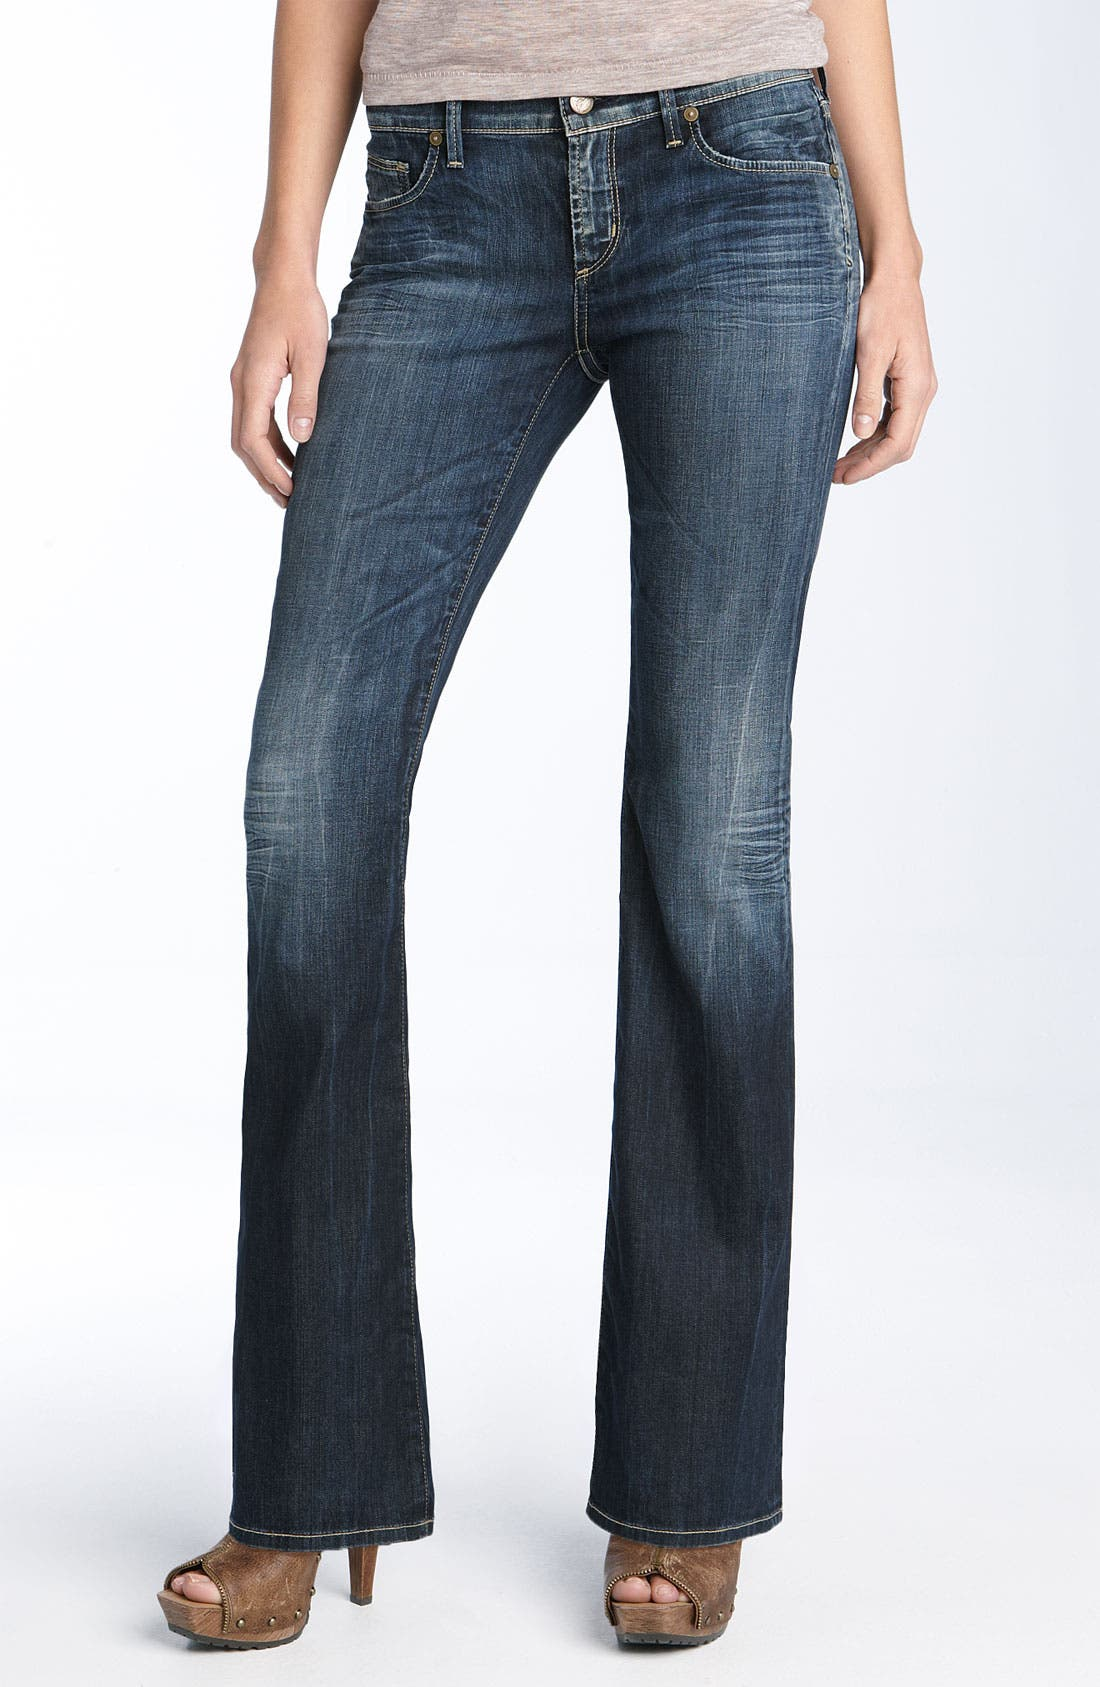 Alternate Image 2  - Citizens of Humanity 'Dita' Bootcut Stretch Jeans (Saint Wash) (Petite)